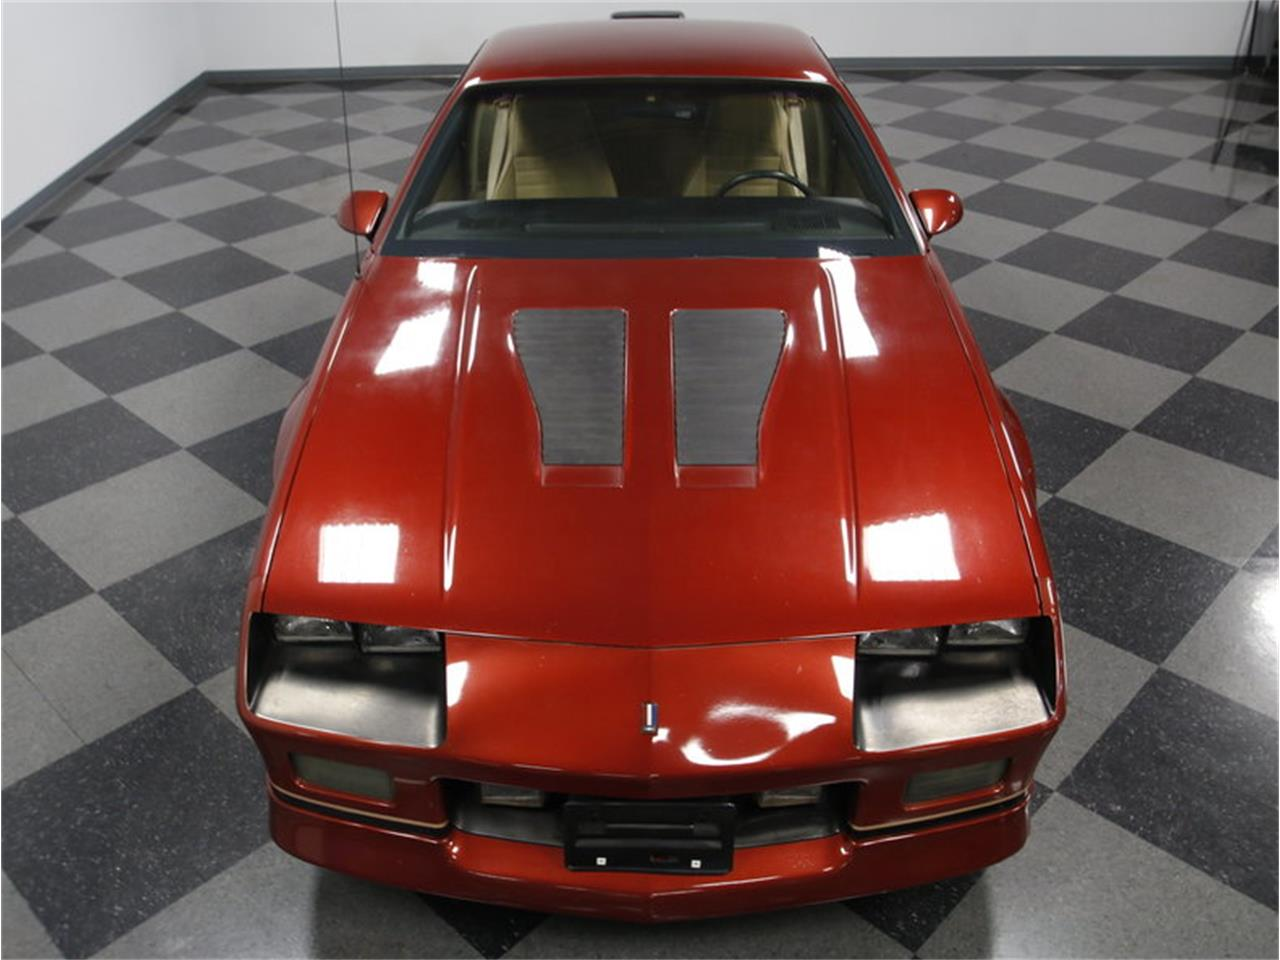 Large Picture of 1986 Chevrolet Camaro IROC Z28 located in North Carolina - $12,995.00 Offered by Streetside Classics - Charlotte - L6HZ